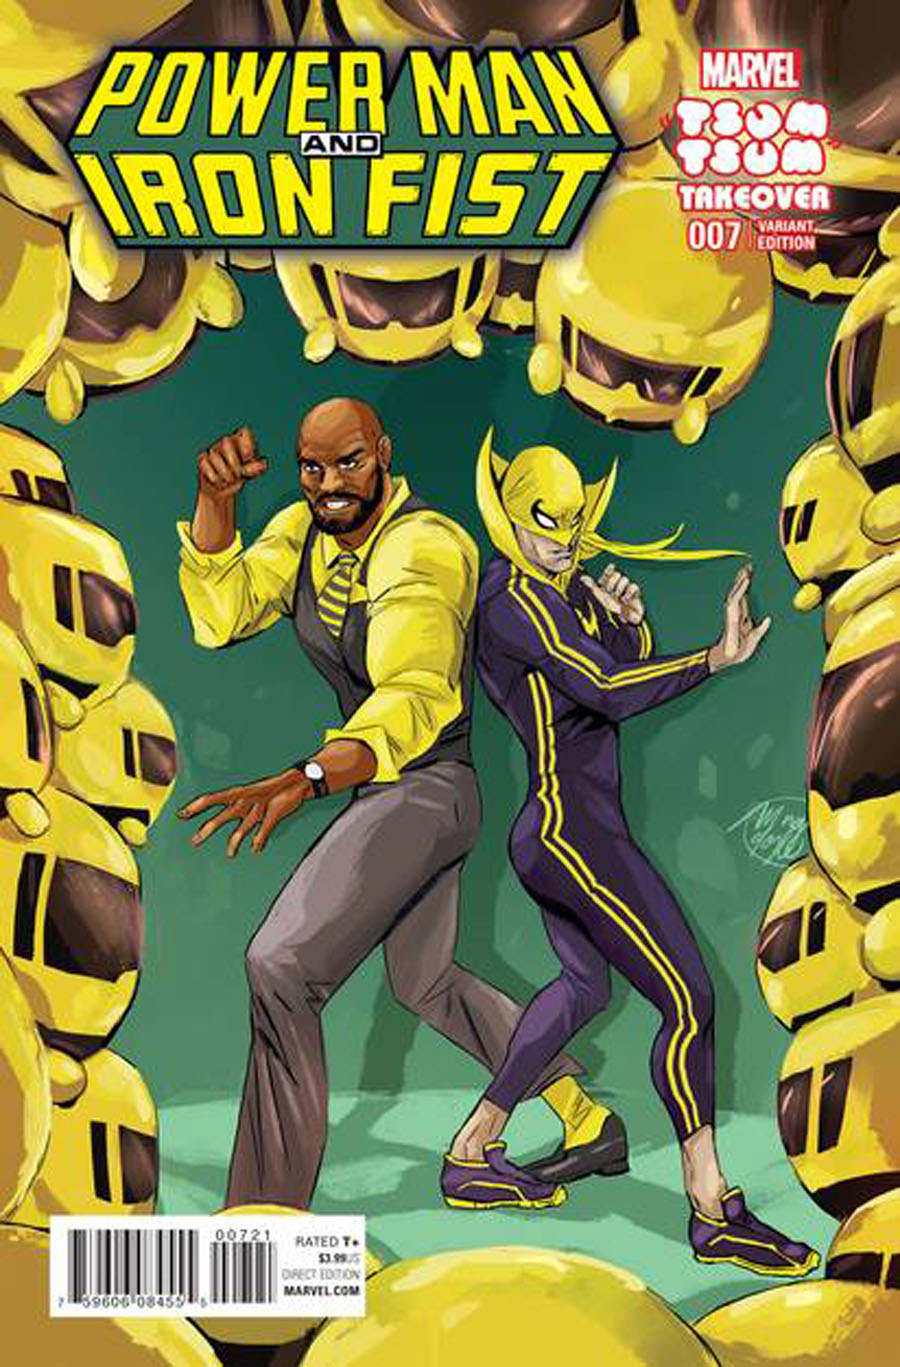 Power Man And Iron Fist Vol 3 #7 Cover B Variant Ming Doyle Marvel Tsum Tsum Takeover Cover (Civil War II Tie-In)